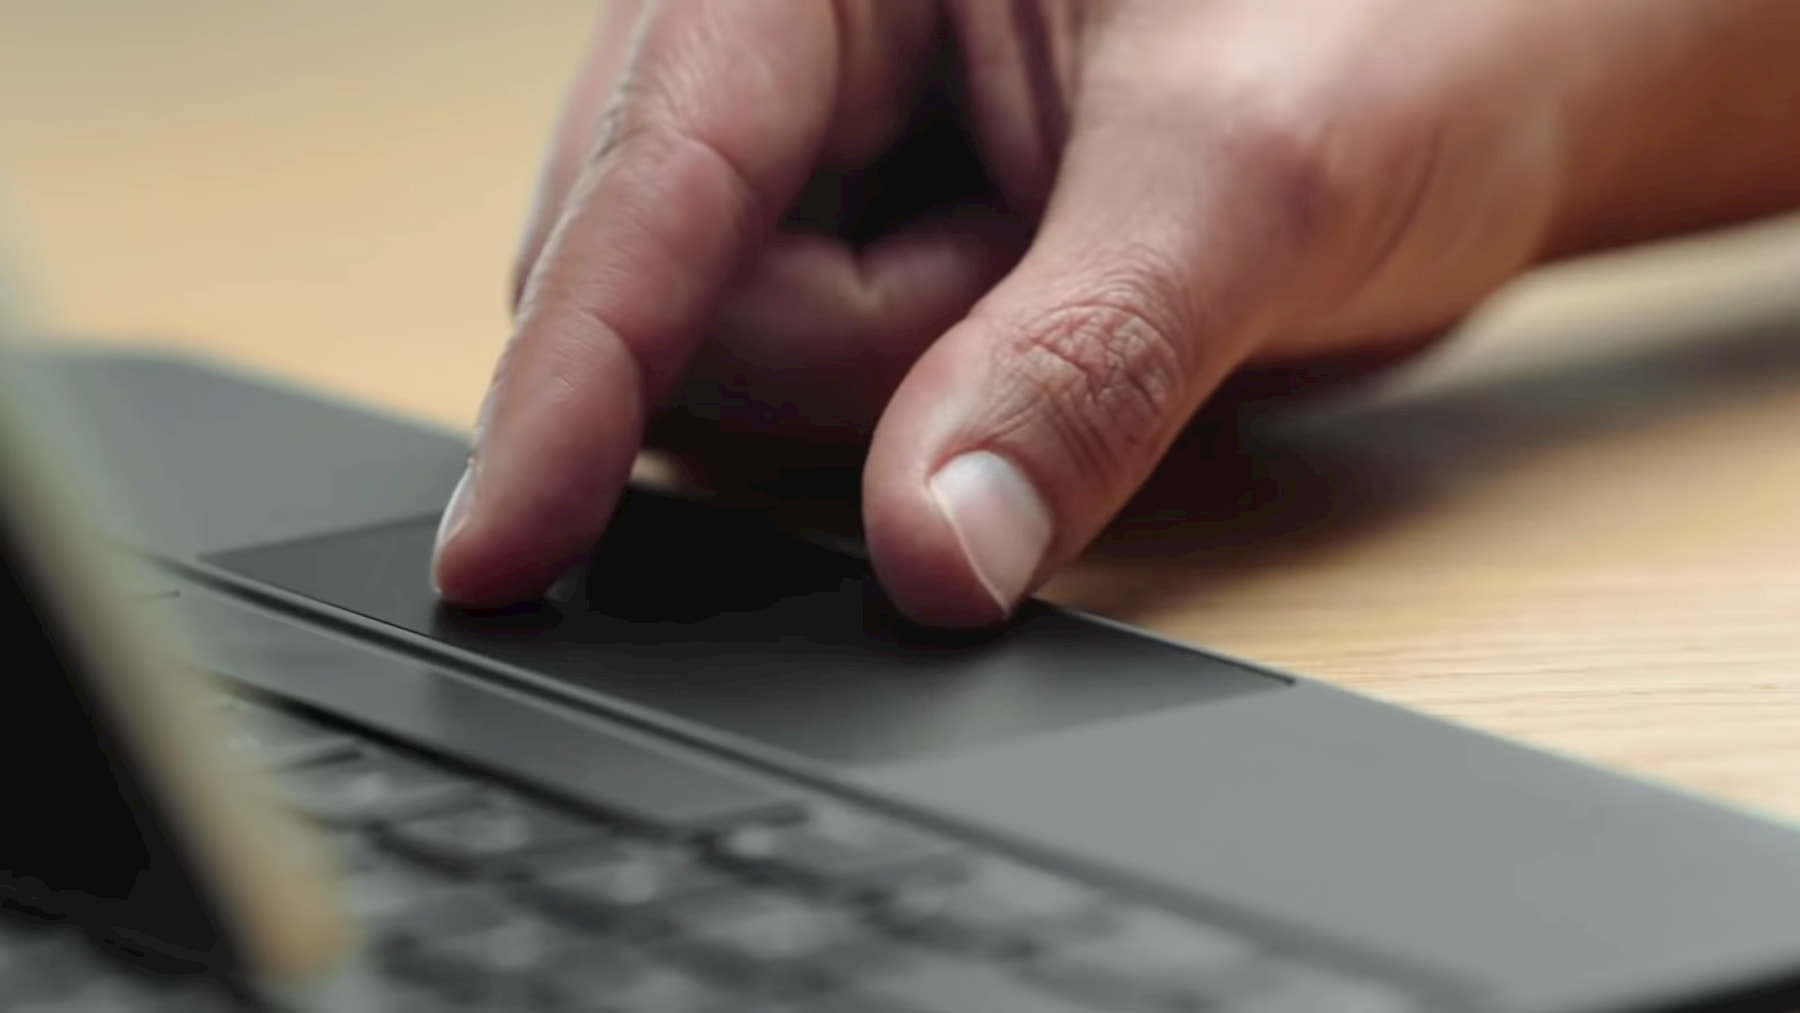 Work smarter, not harder with your Chromebook keyboard and trackpad